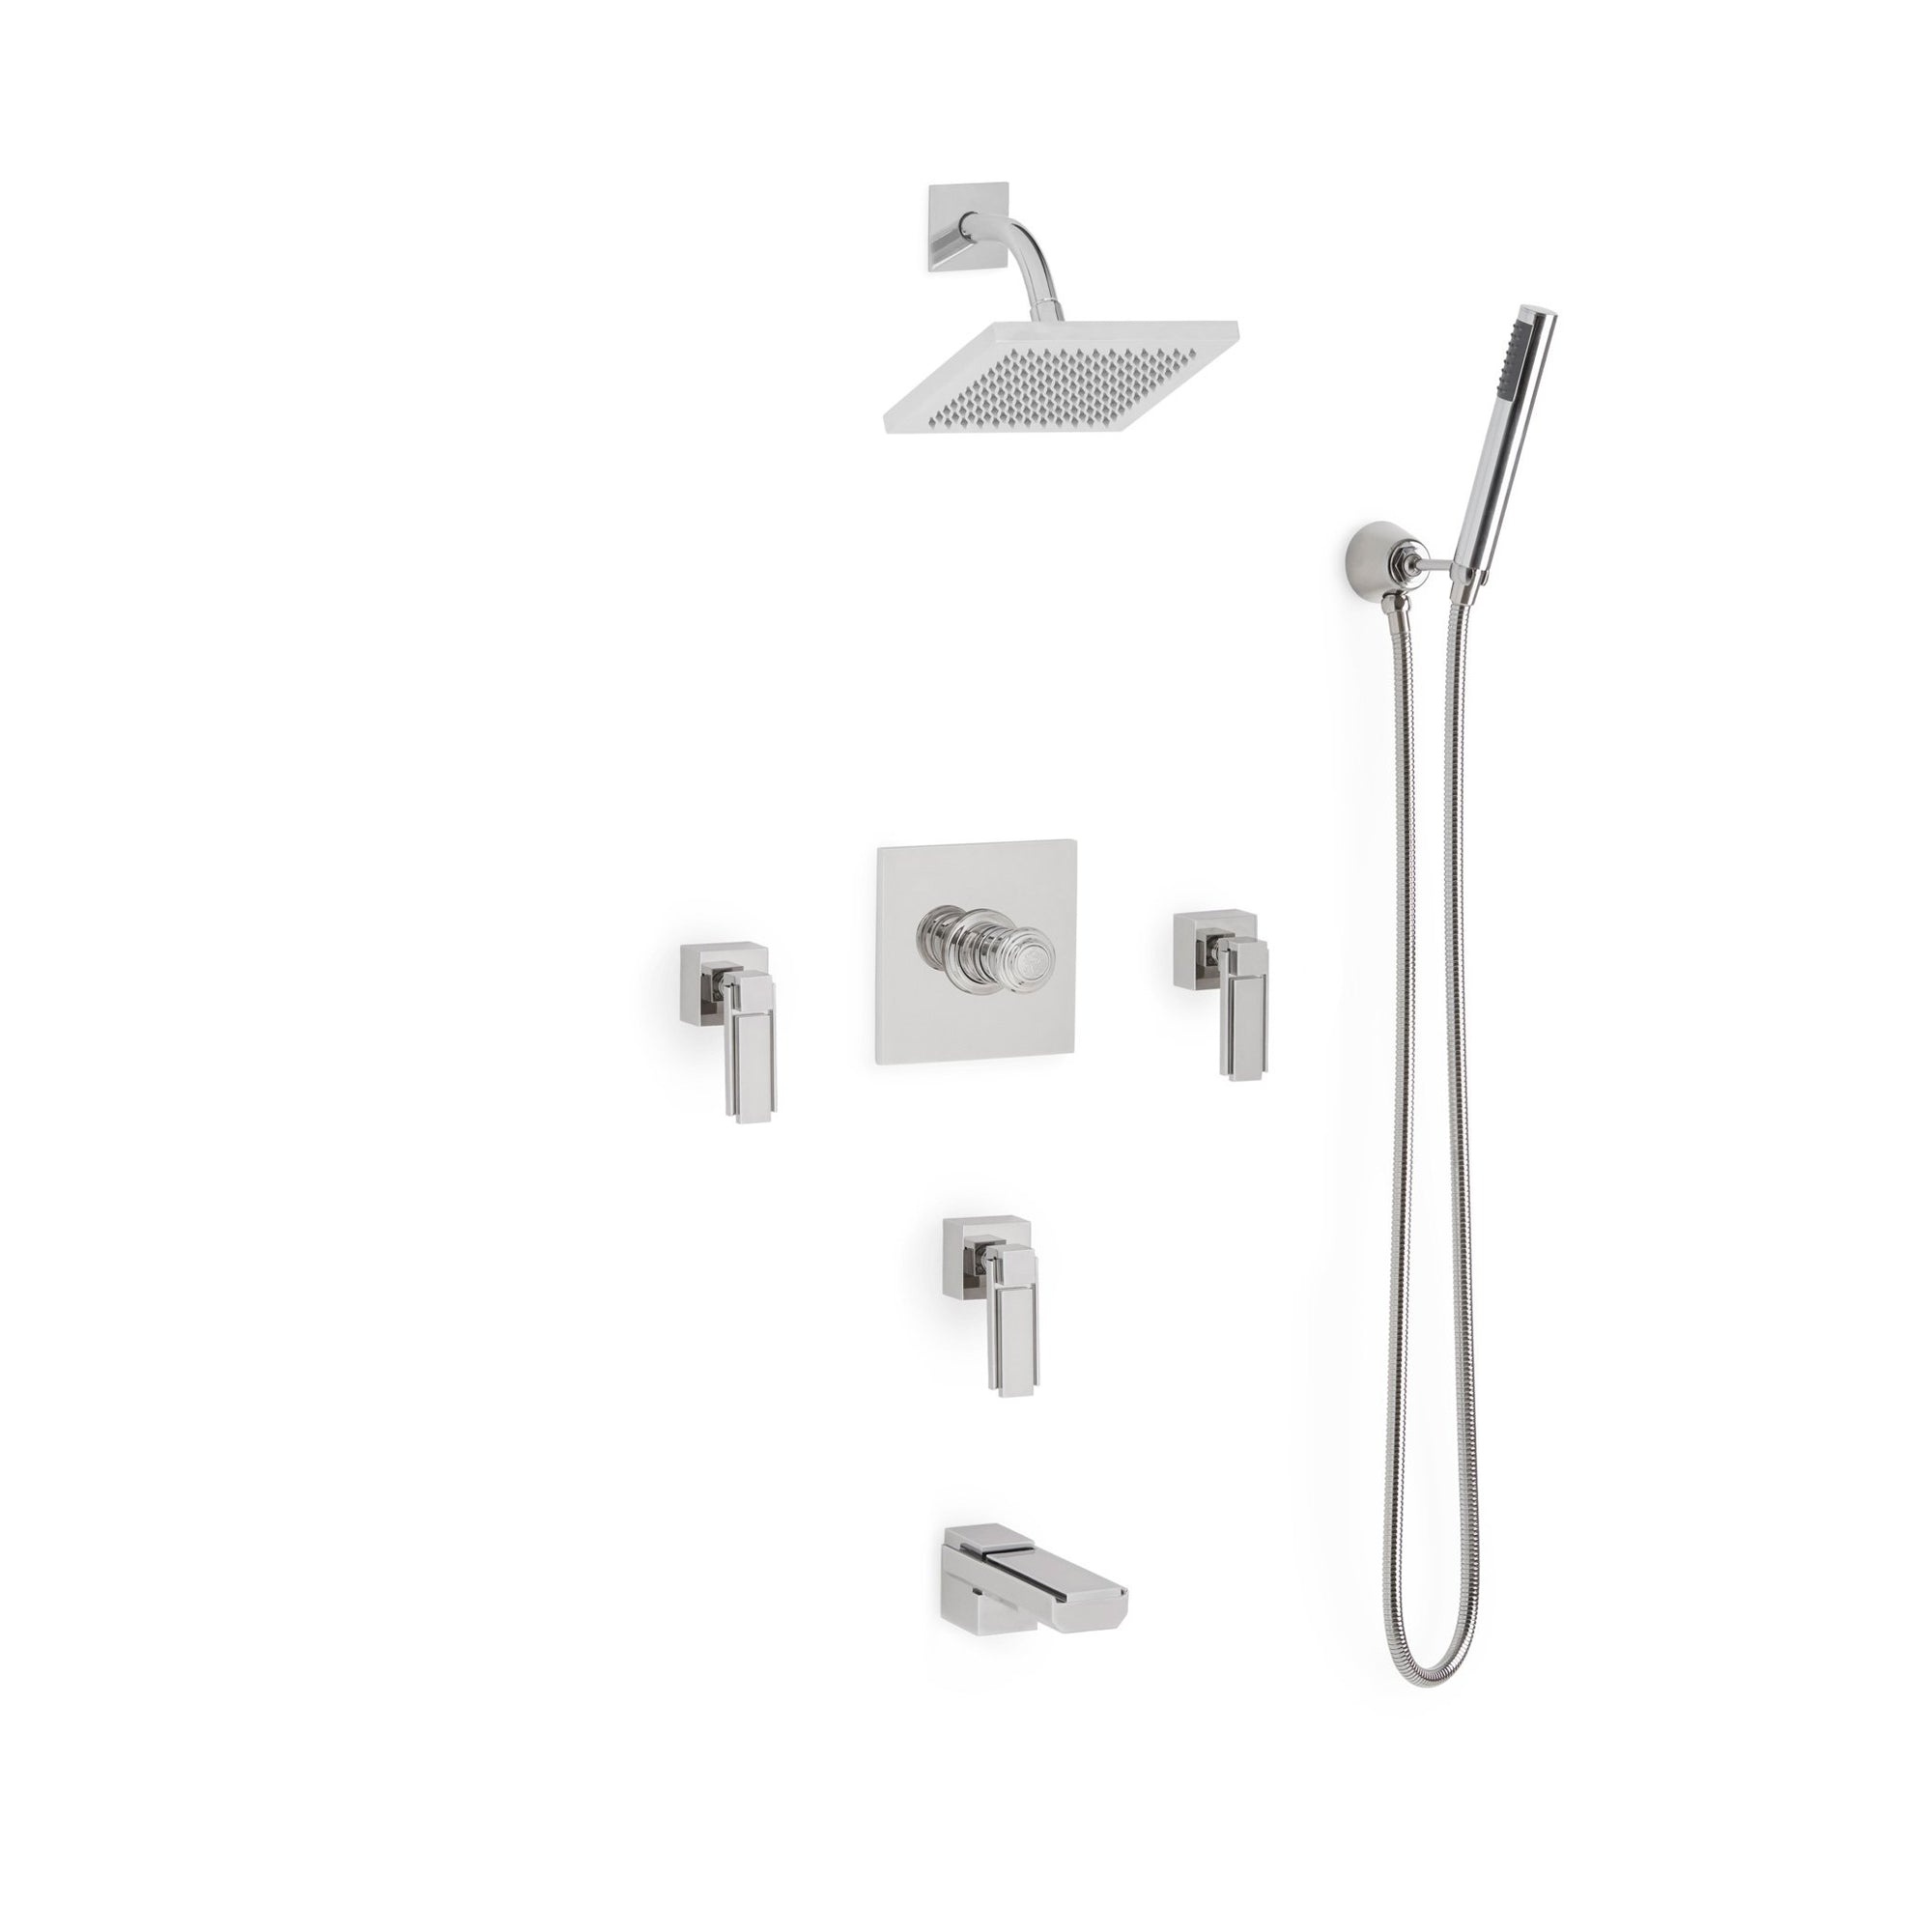 Sherle Wagner International Apollo High Flow Thermostatic Shower and Tub System in Polished Chrome metal finish